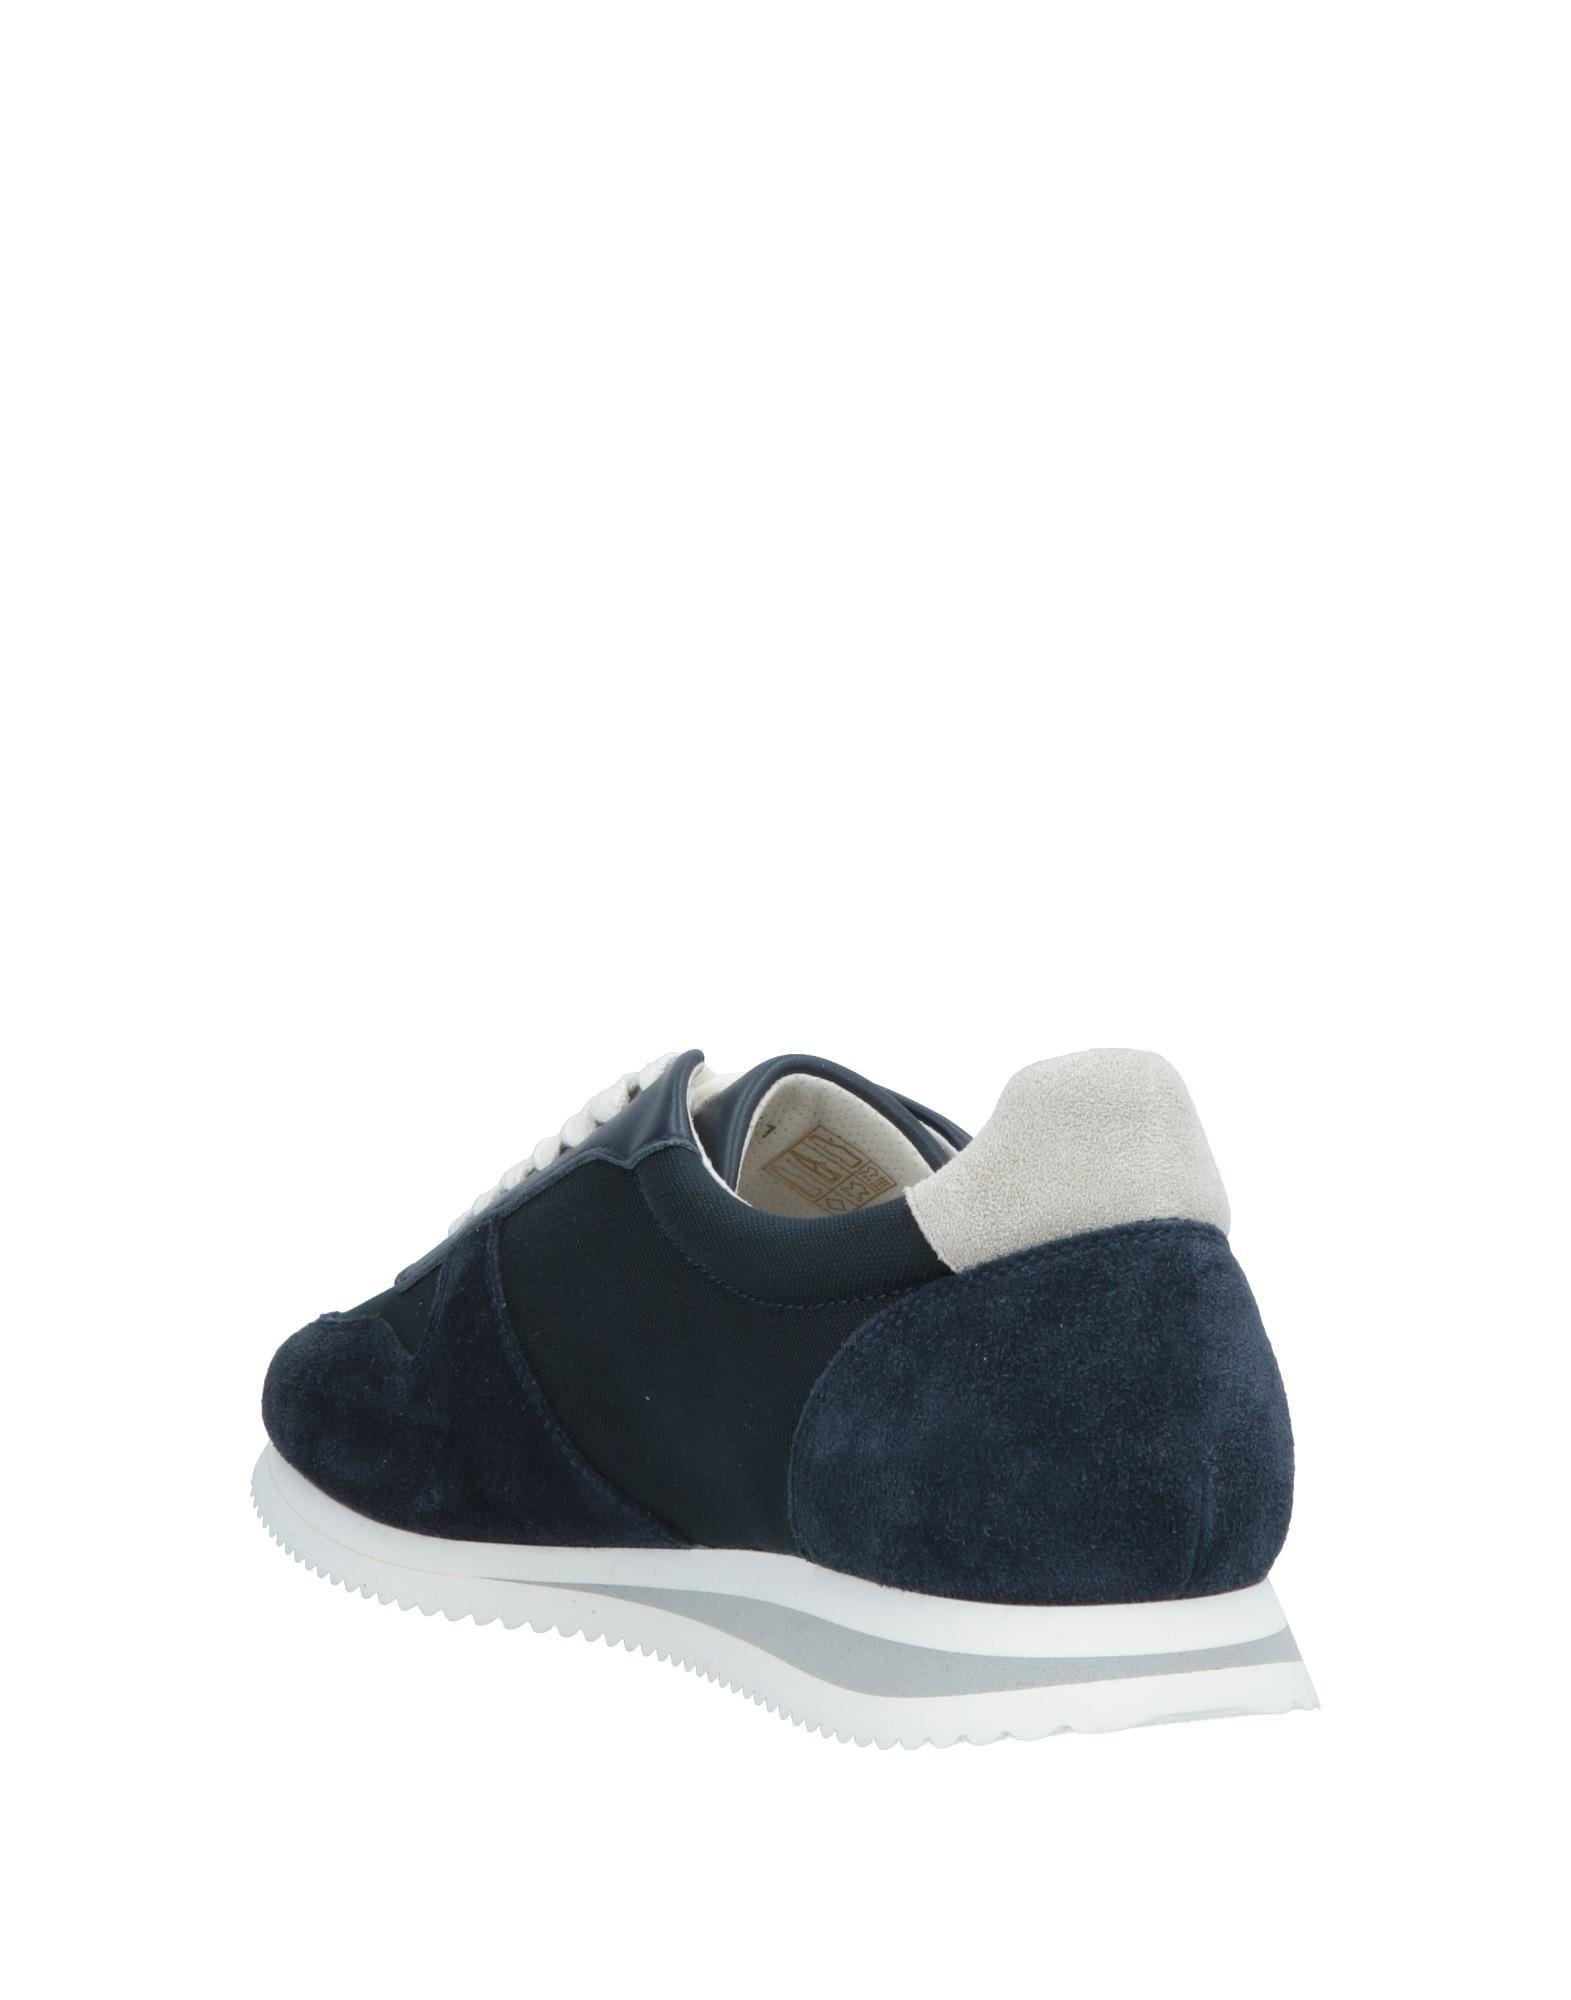 1c27b6ad89 Lyst - Brunello Cucinelli Low-tops   Sneakers in Blue for Men